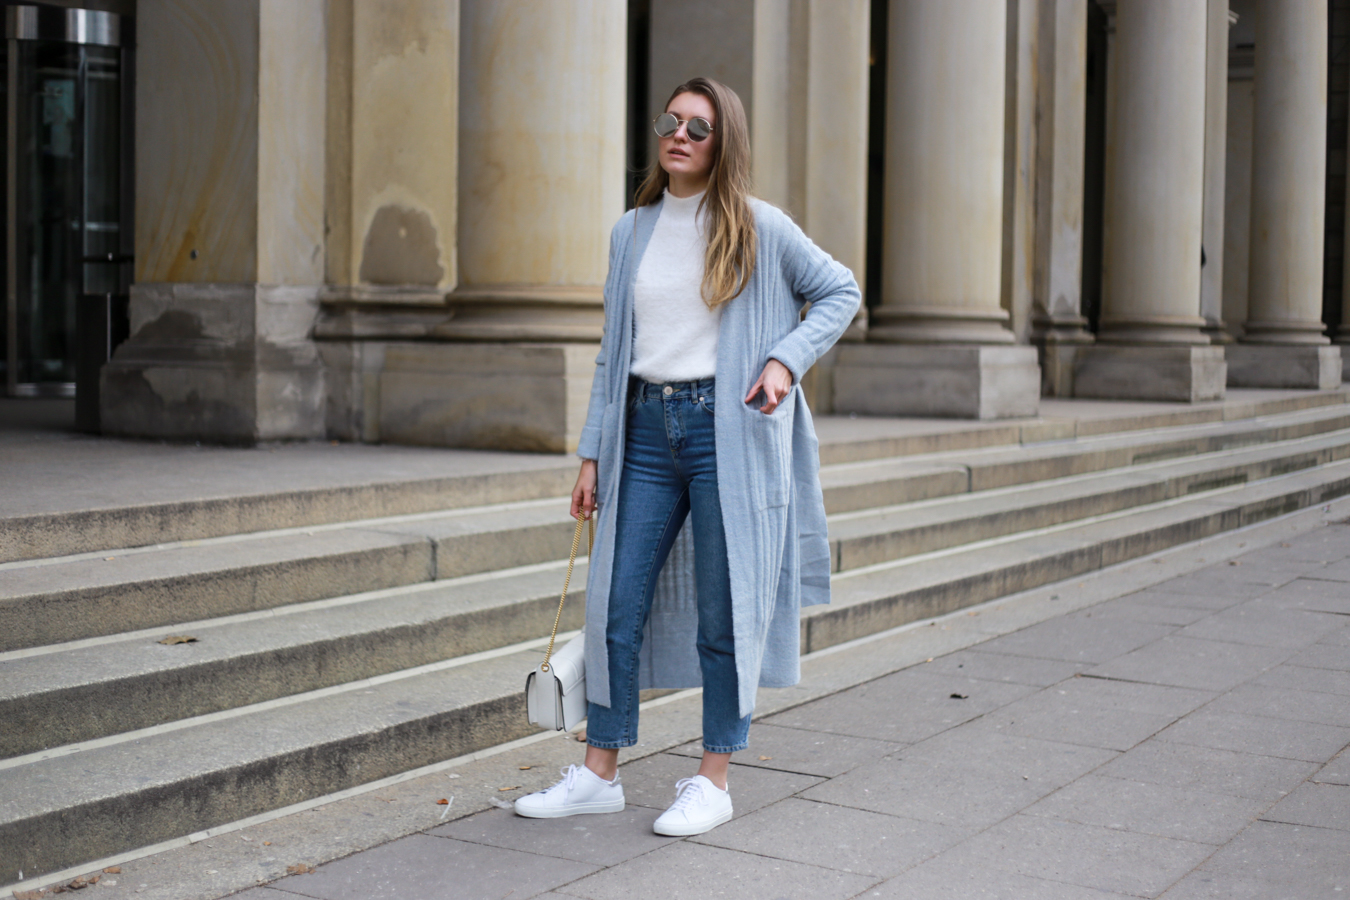 BLUE KNIT CARDIGAN MEETS BLUE JEANS